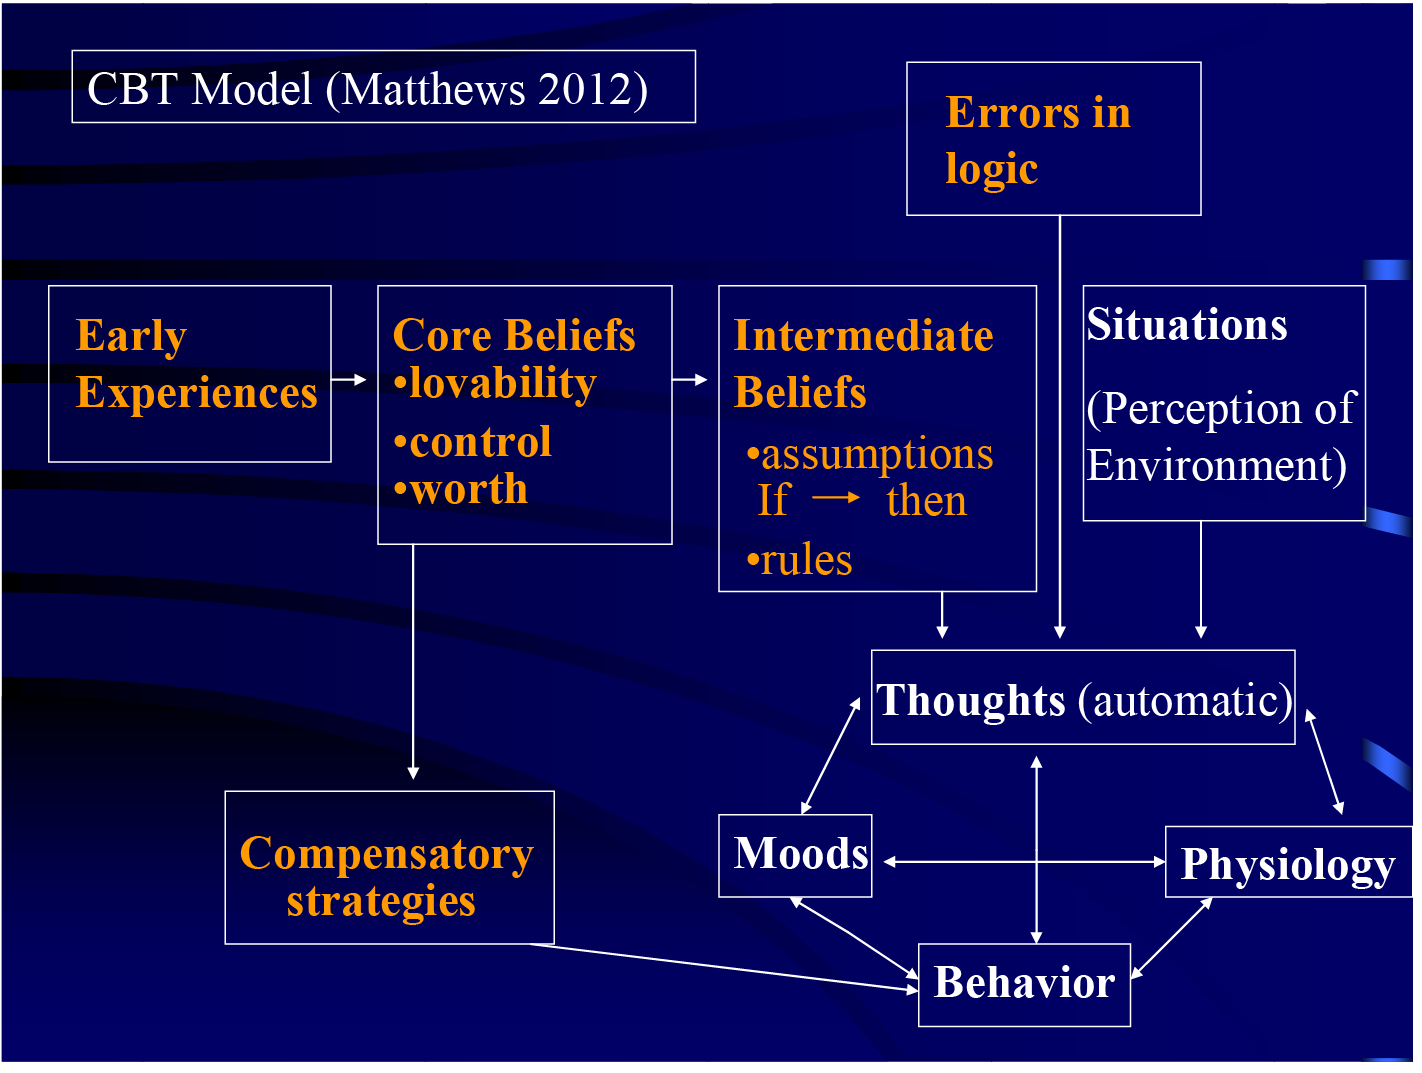 Cognitive Behavioral Therapy Approach for Suicidal Thinking